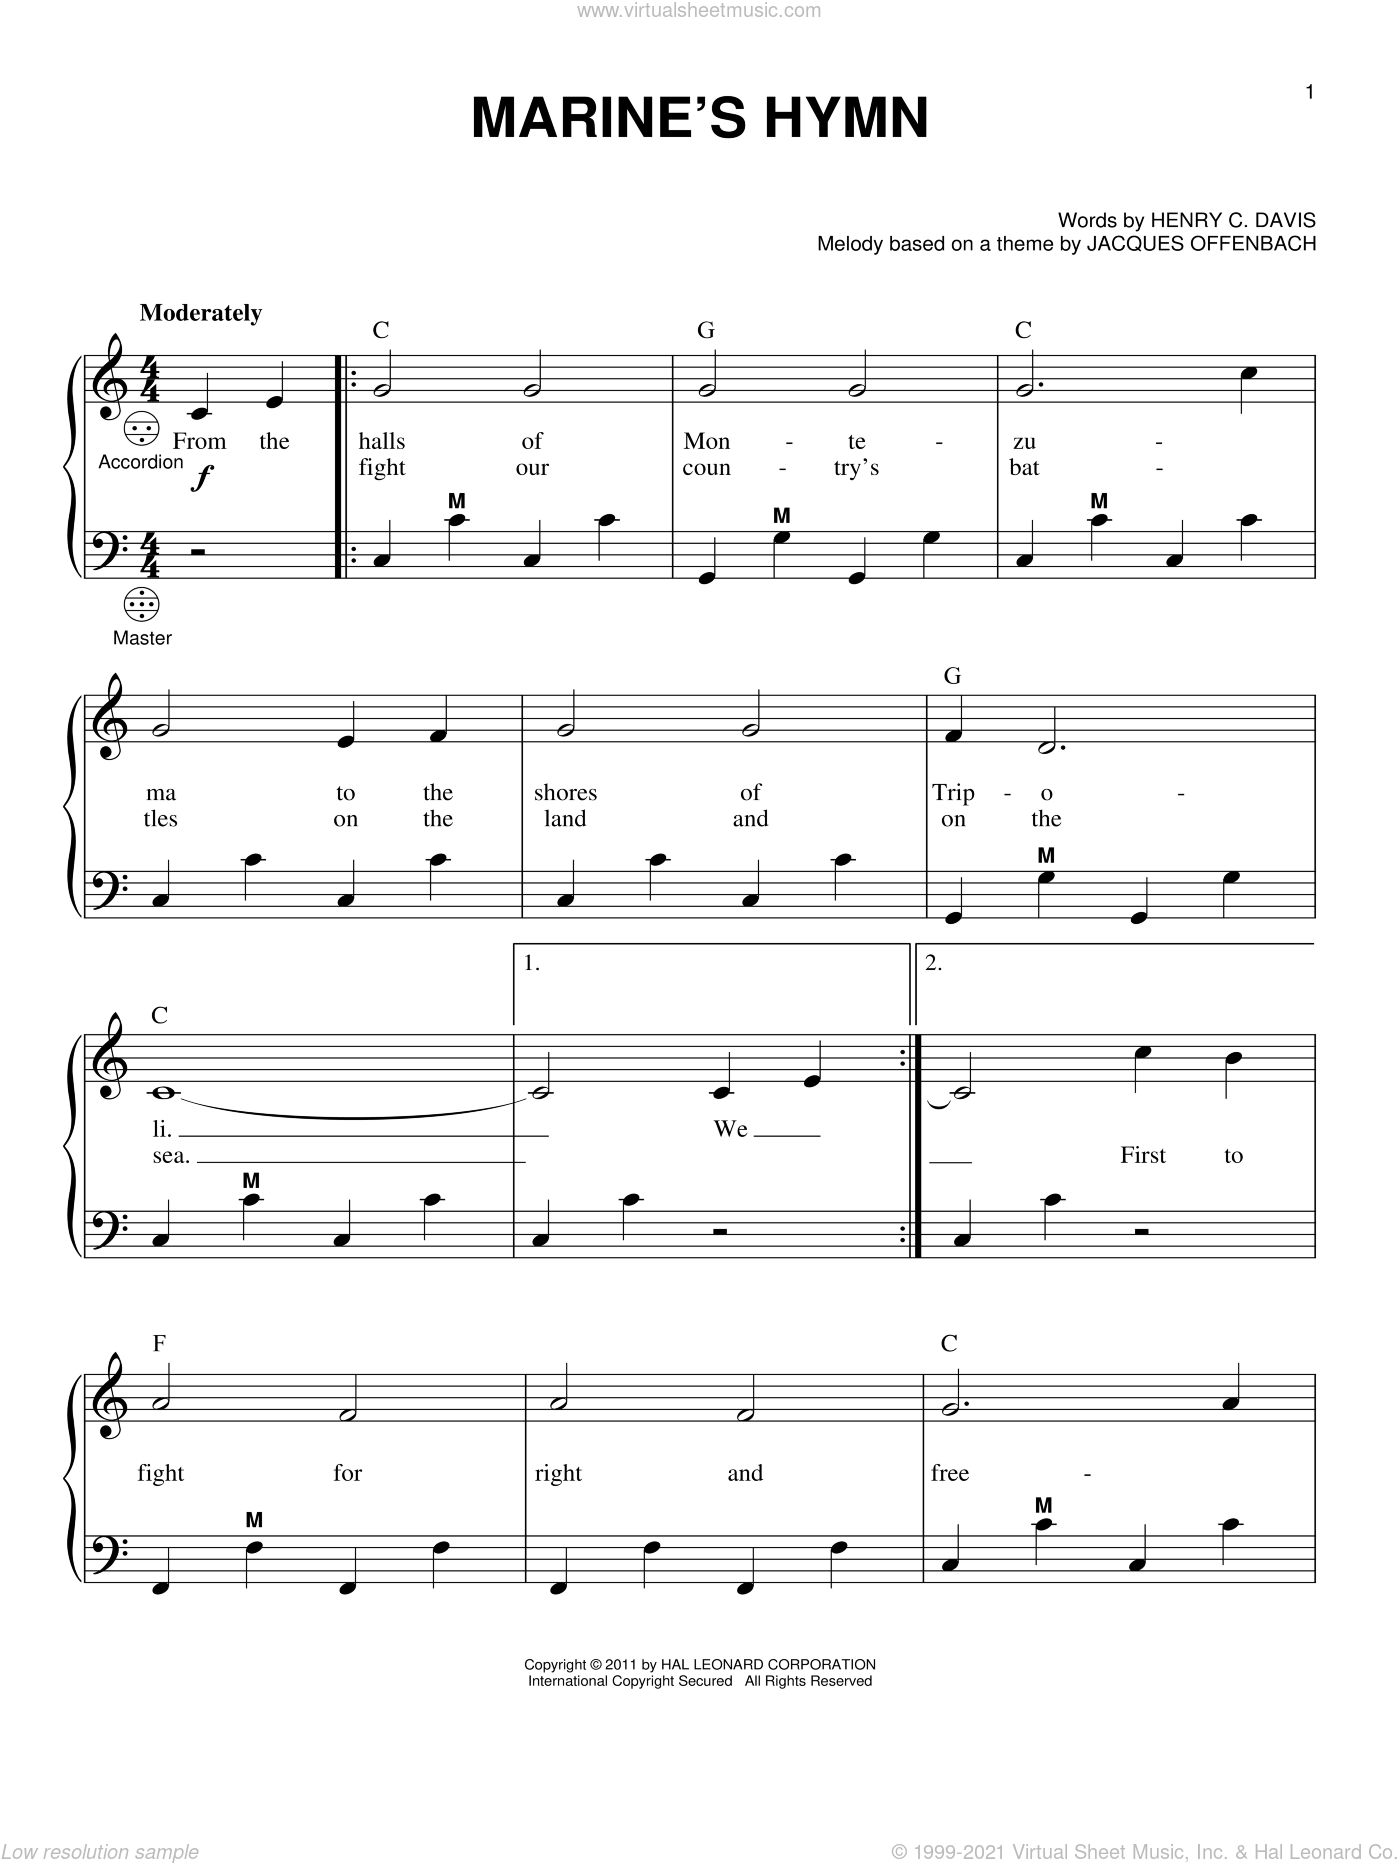 Marine's Hymn sheet music for accordion by Henry C. Davis, Gary Meisner and Jacques Offenbach, intermediate skill level